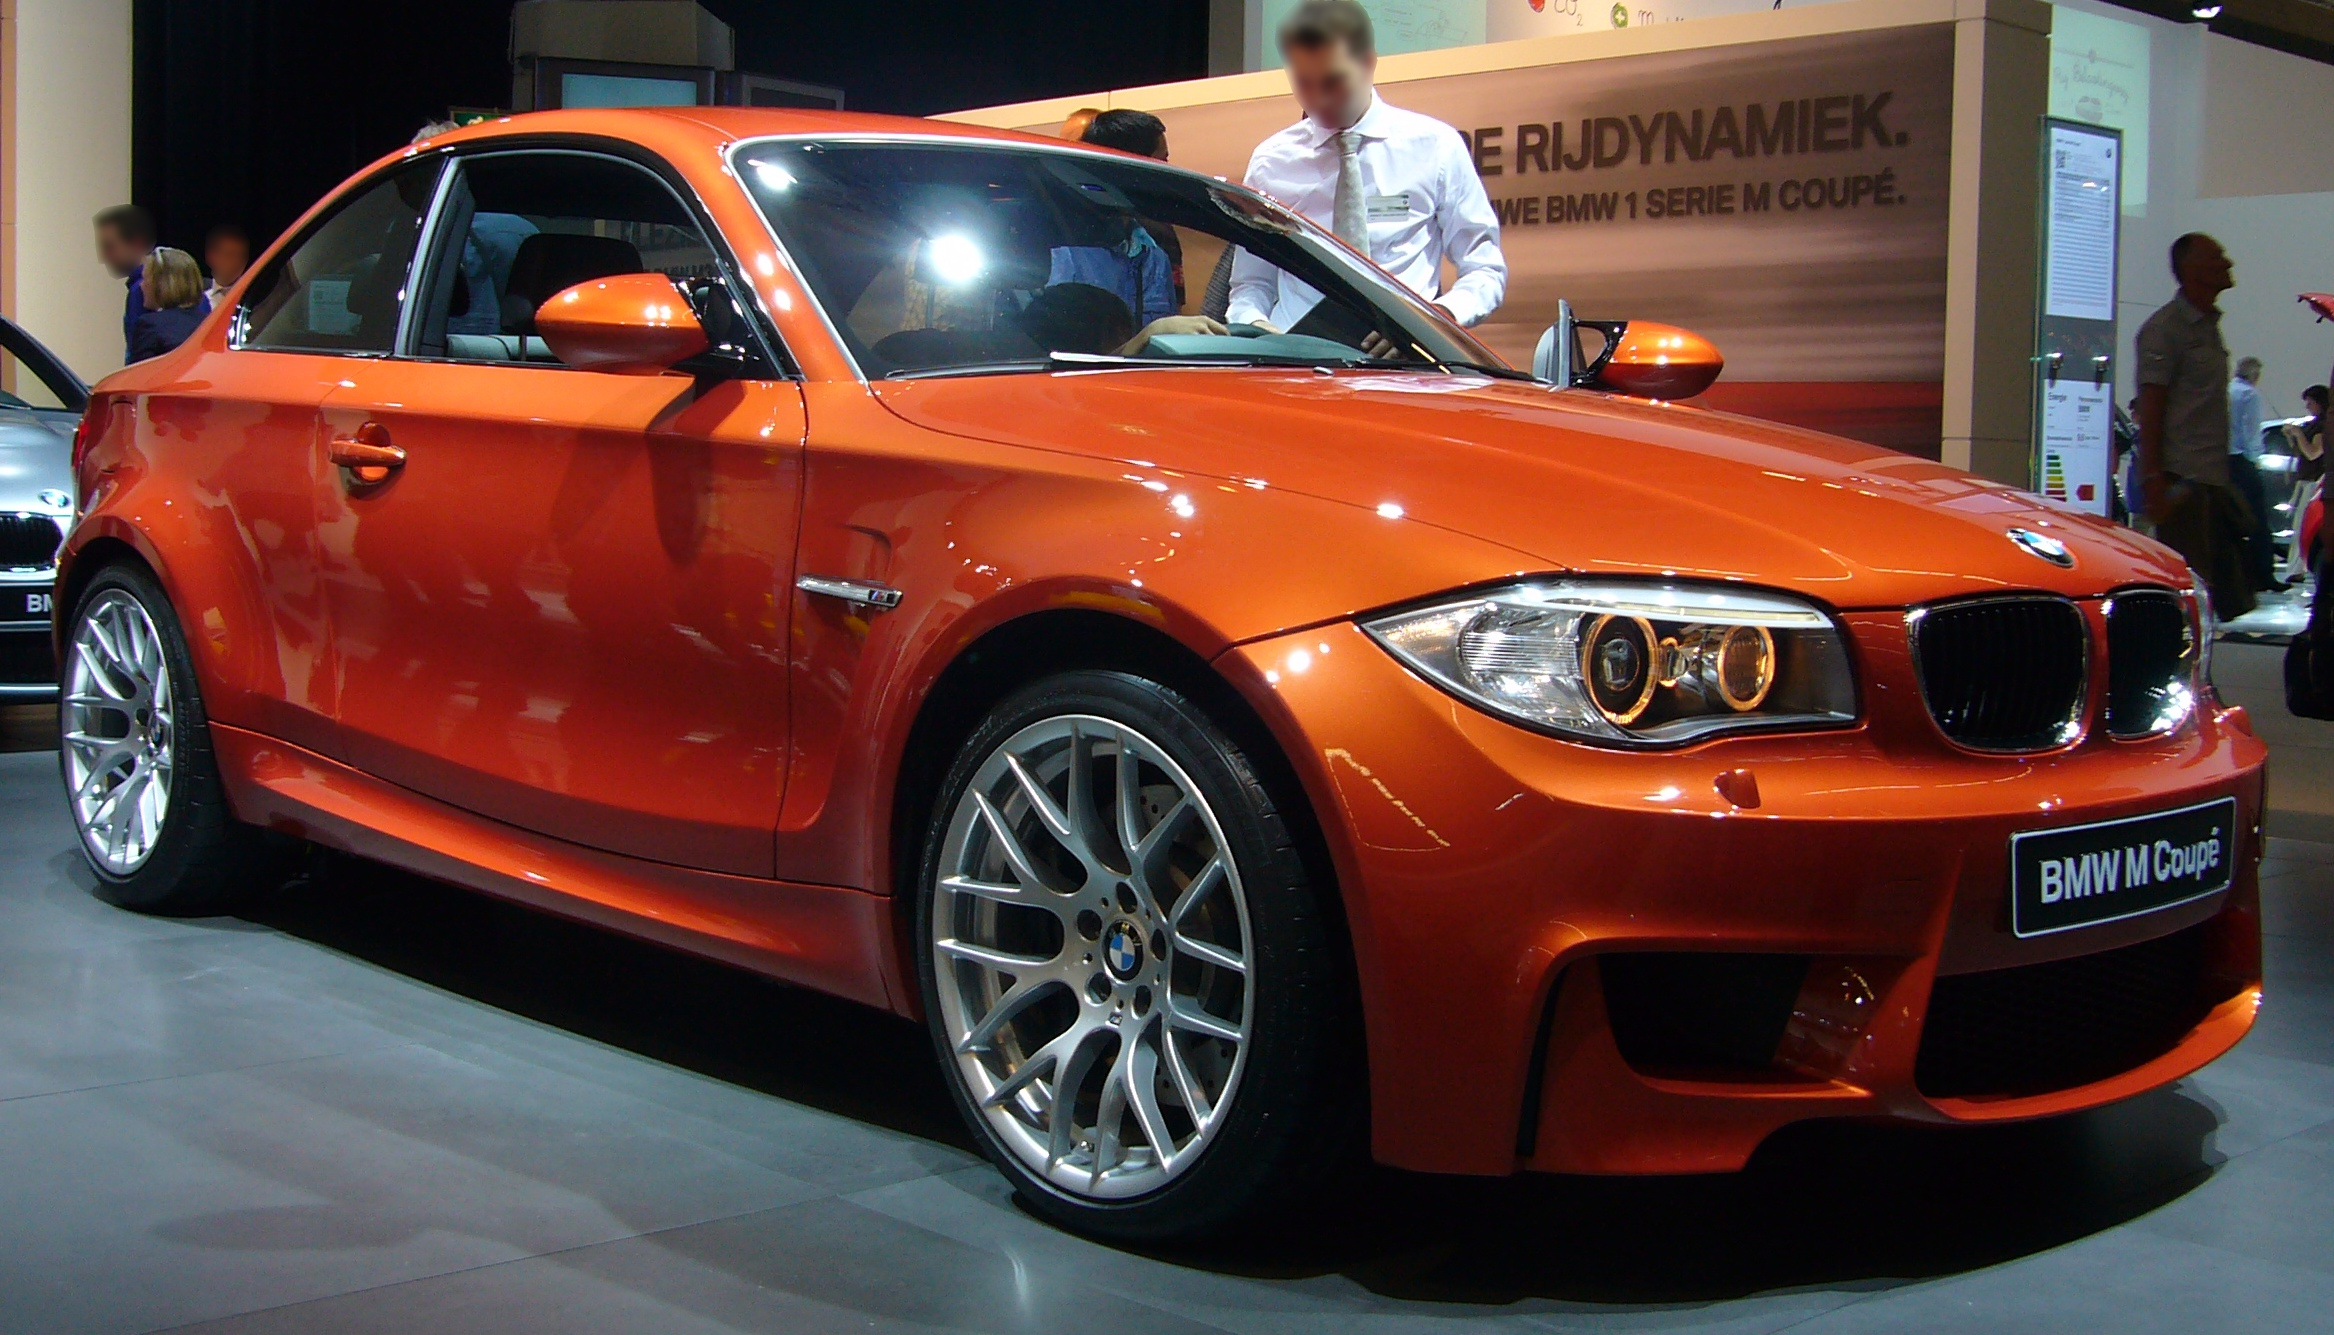 File:BMW 1 Series M Coupe (front quarter).jpg - Wikimedia Commons